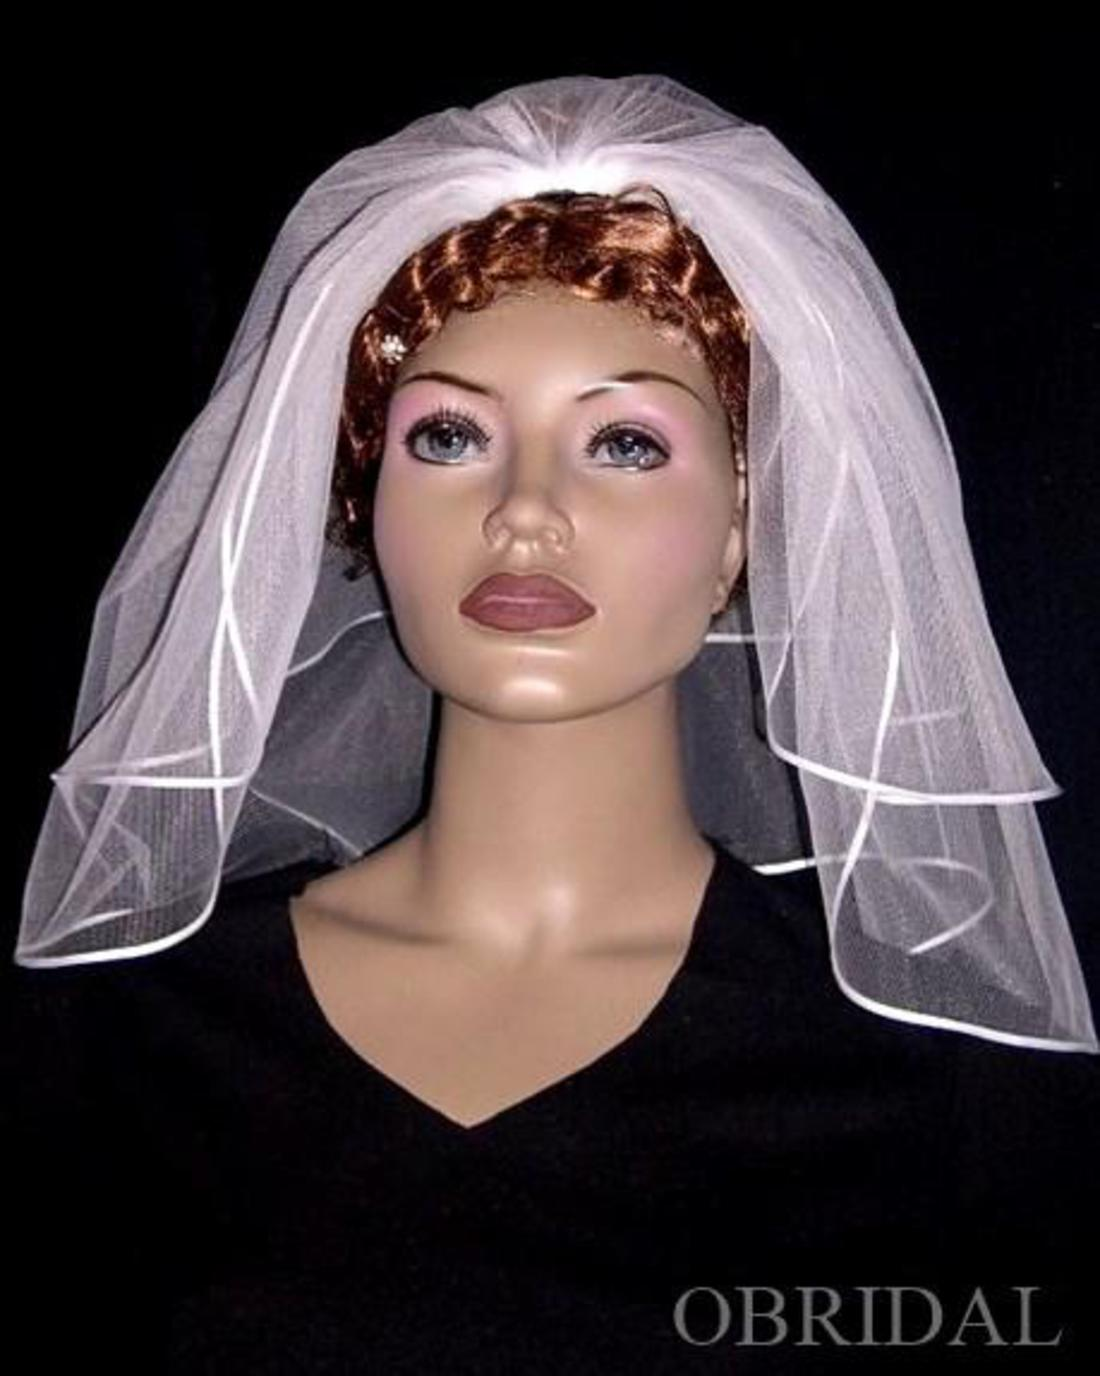 OBRIDAL Custom Wedding Veils - SH2-225 Short and Sweet Veil